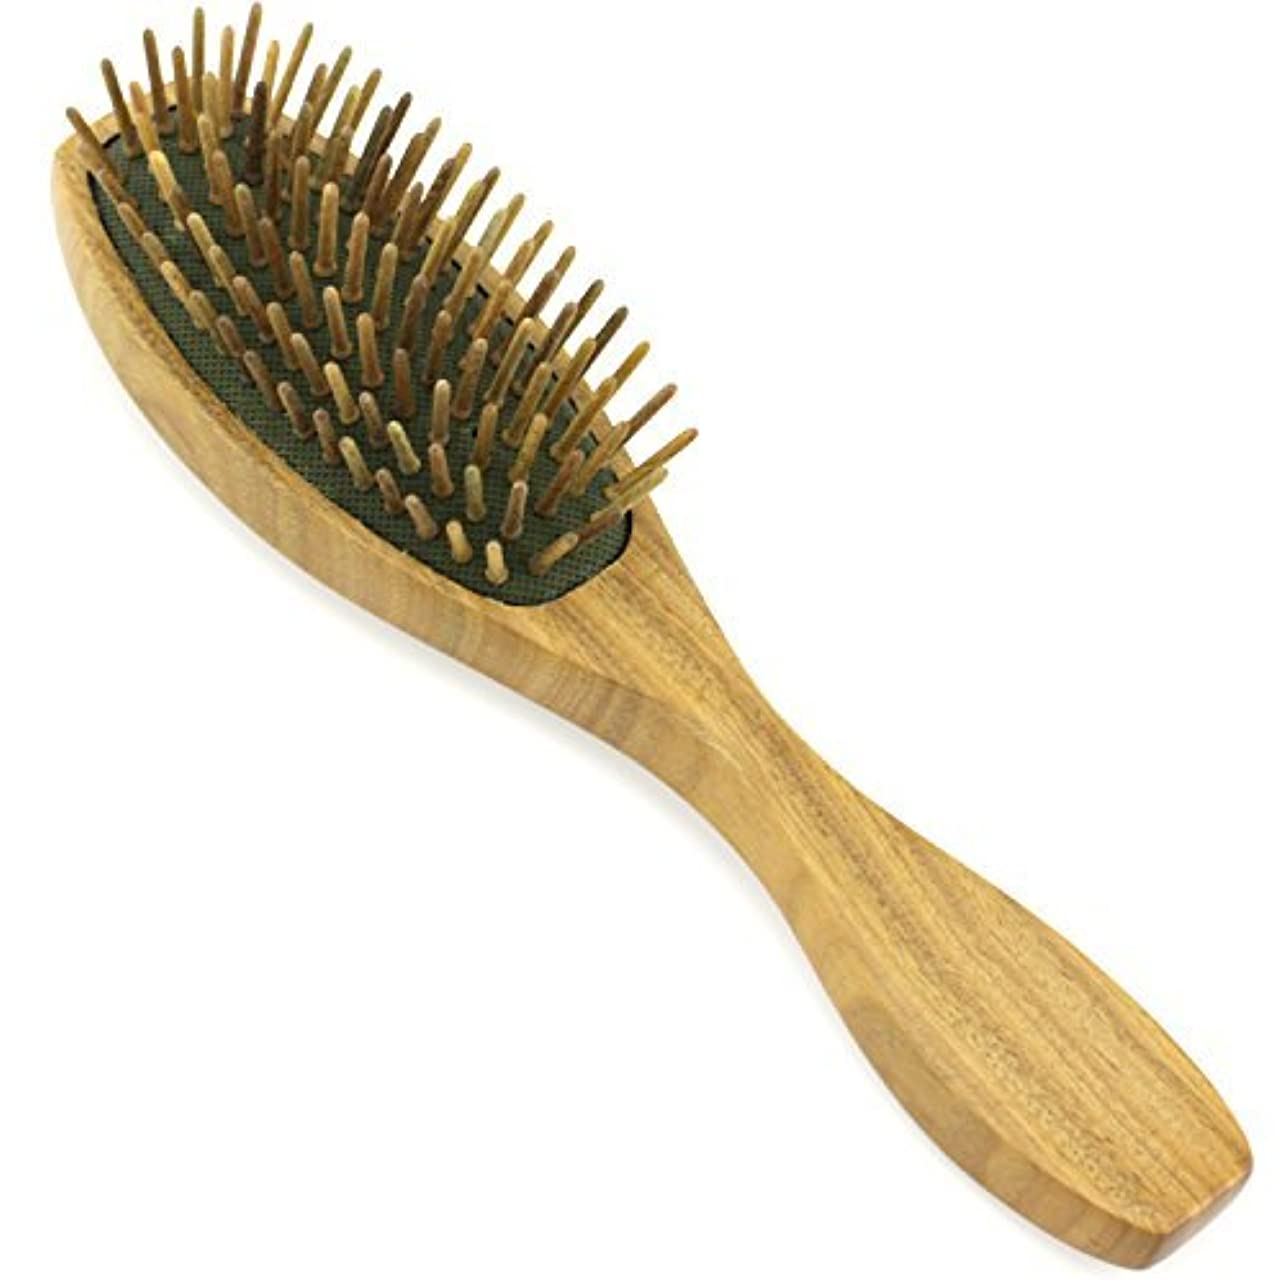 Evolatree - Evolatree - Wood Bristle Brush, Wood Comb Hair Comb, Wood, 8.25